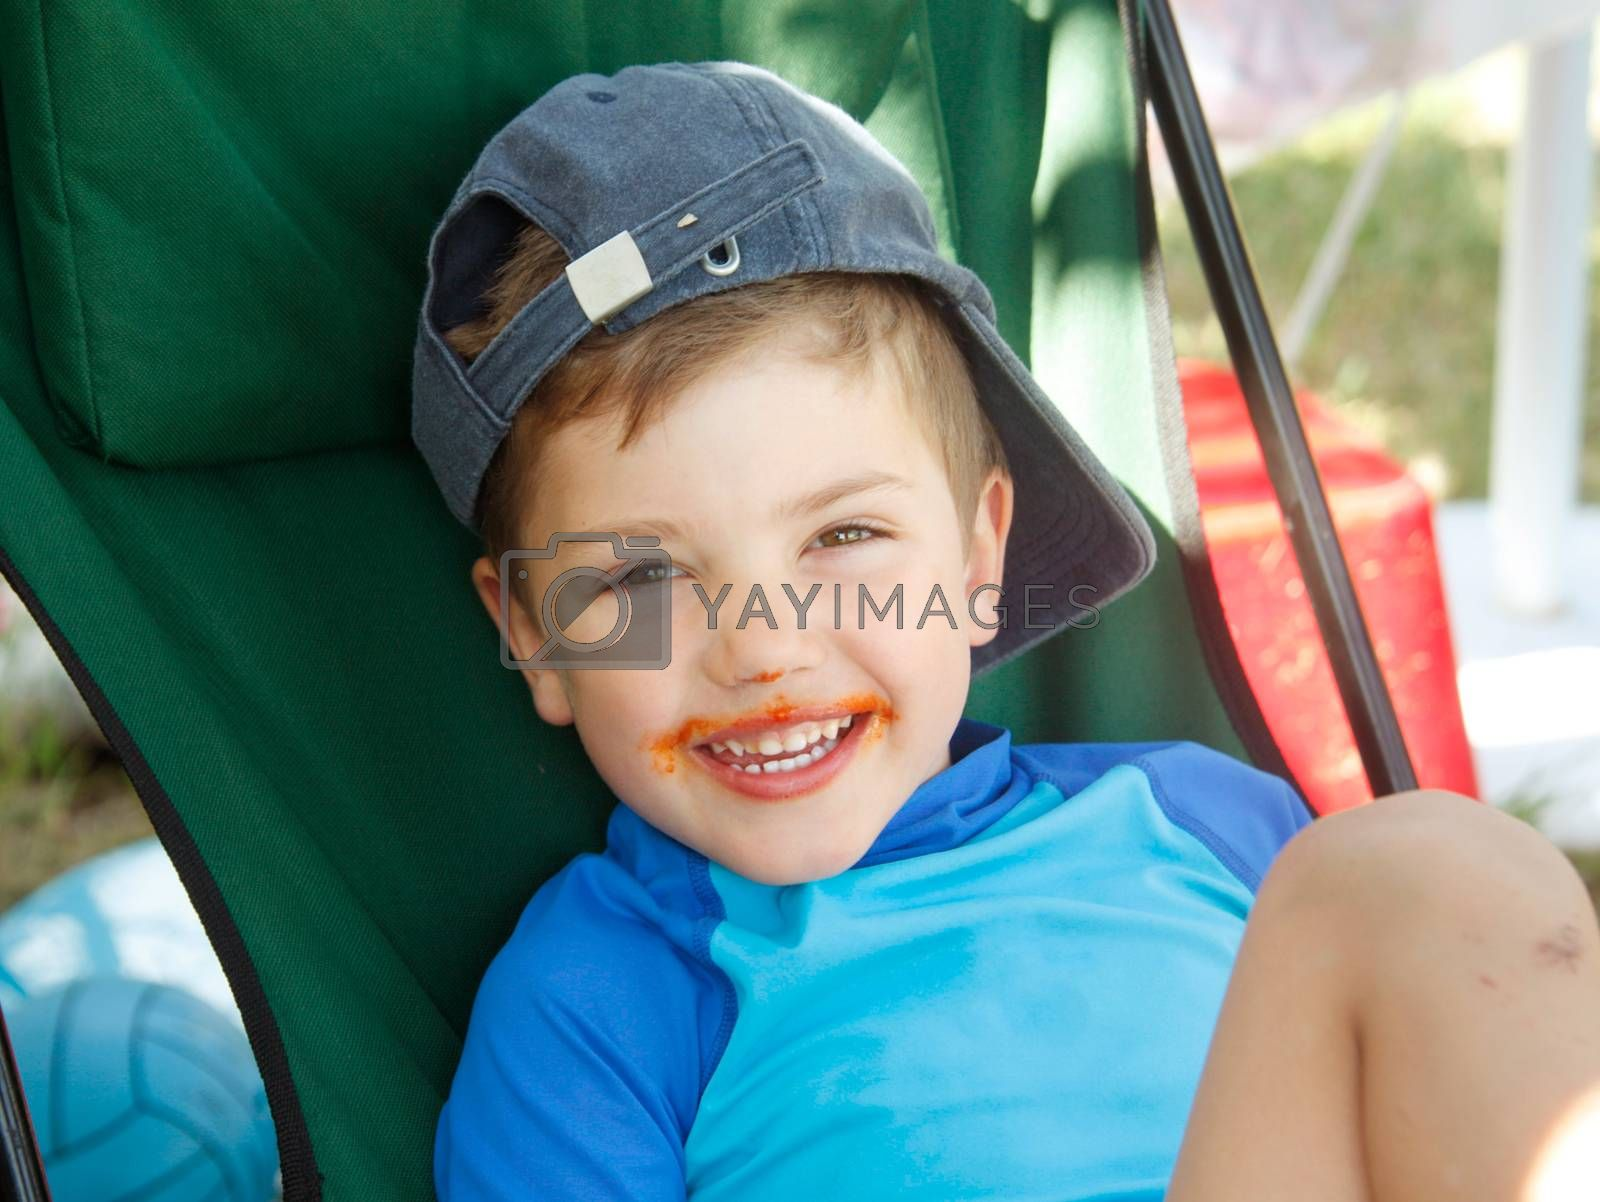 Royalty free image of Little Boy Smile Dirty Mouth by vilevi